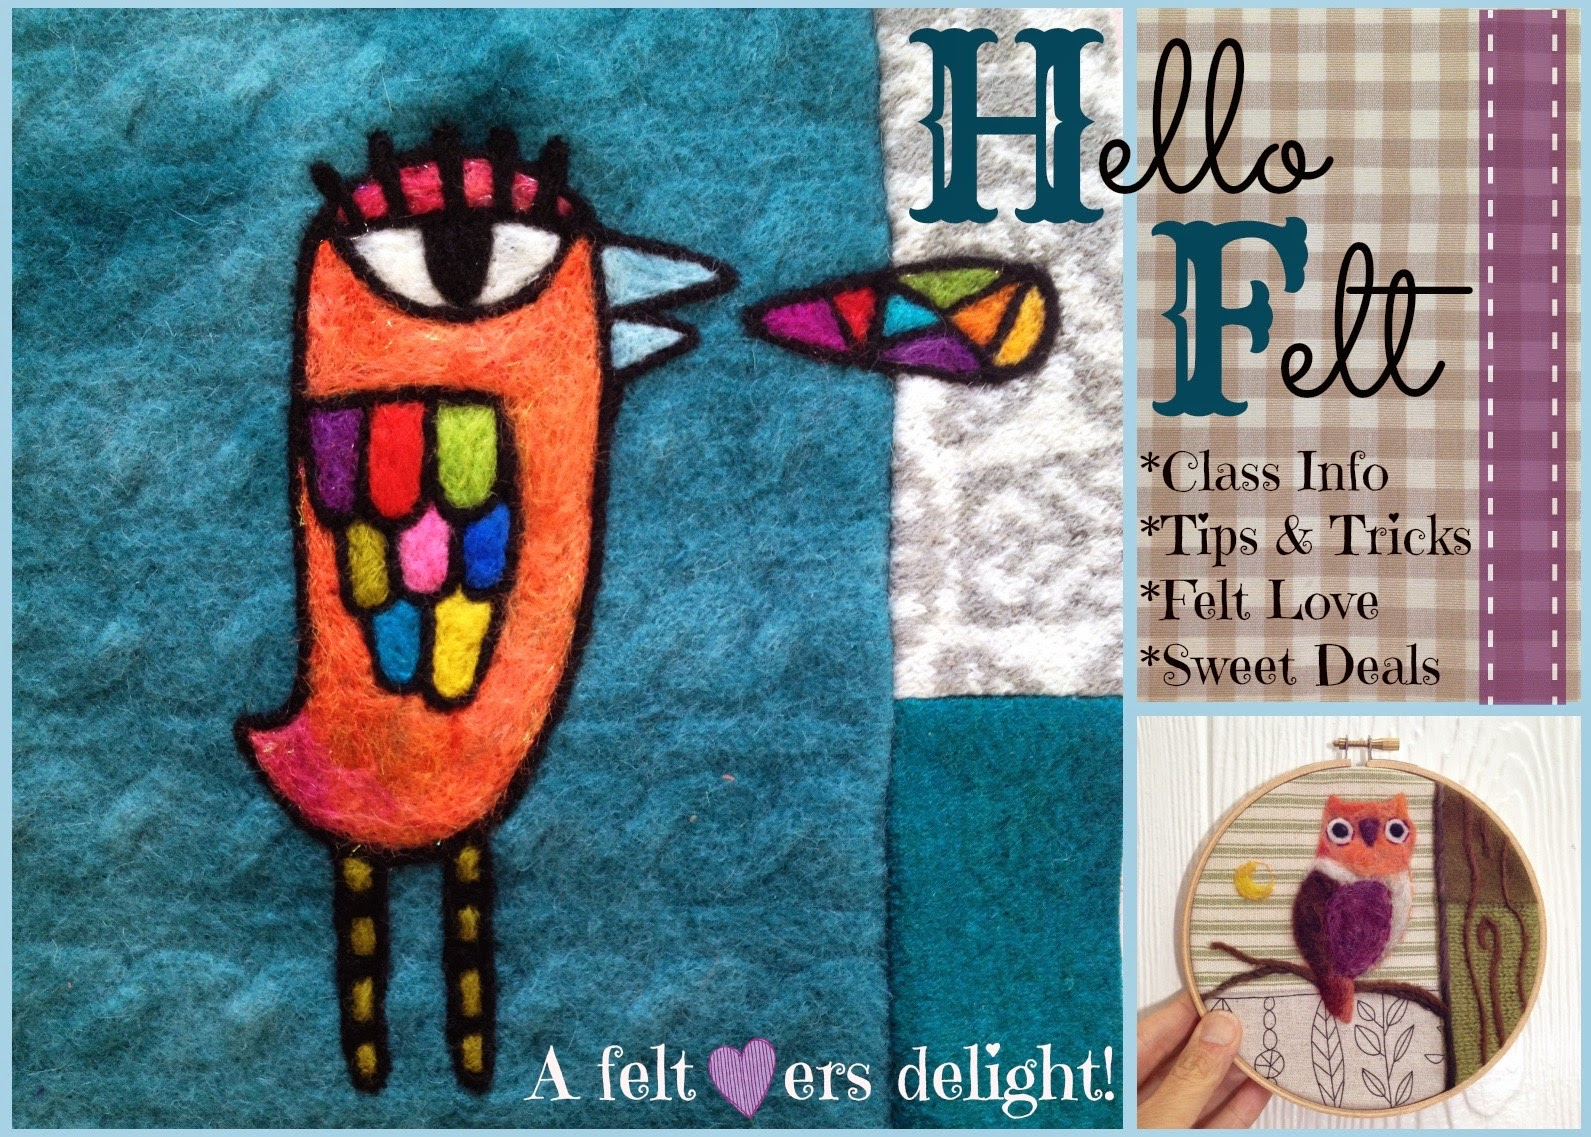 Learn to Needle felt!